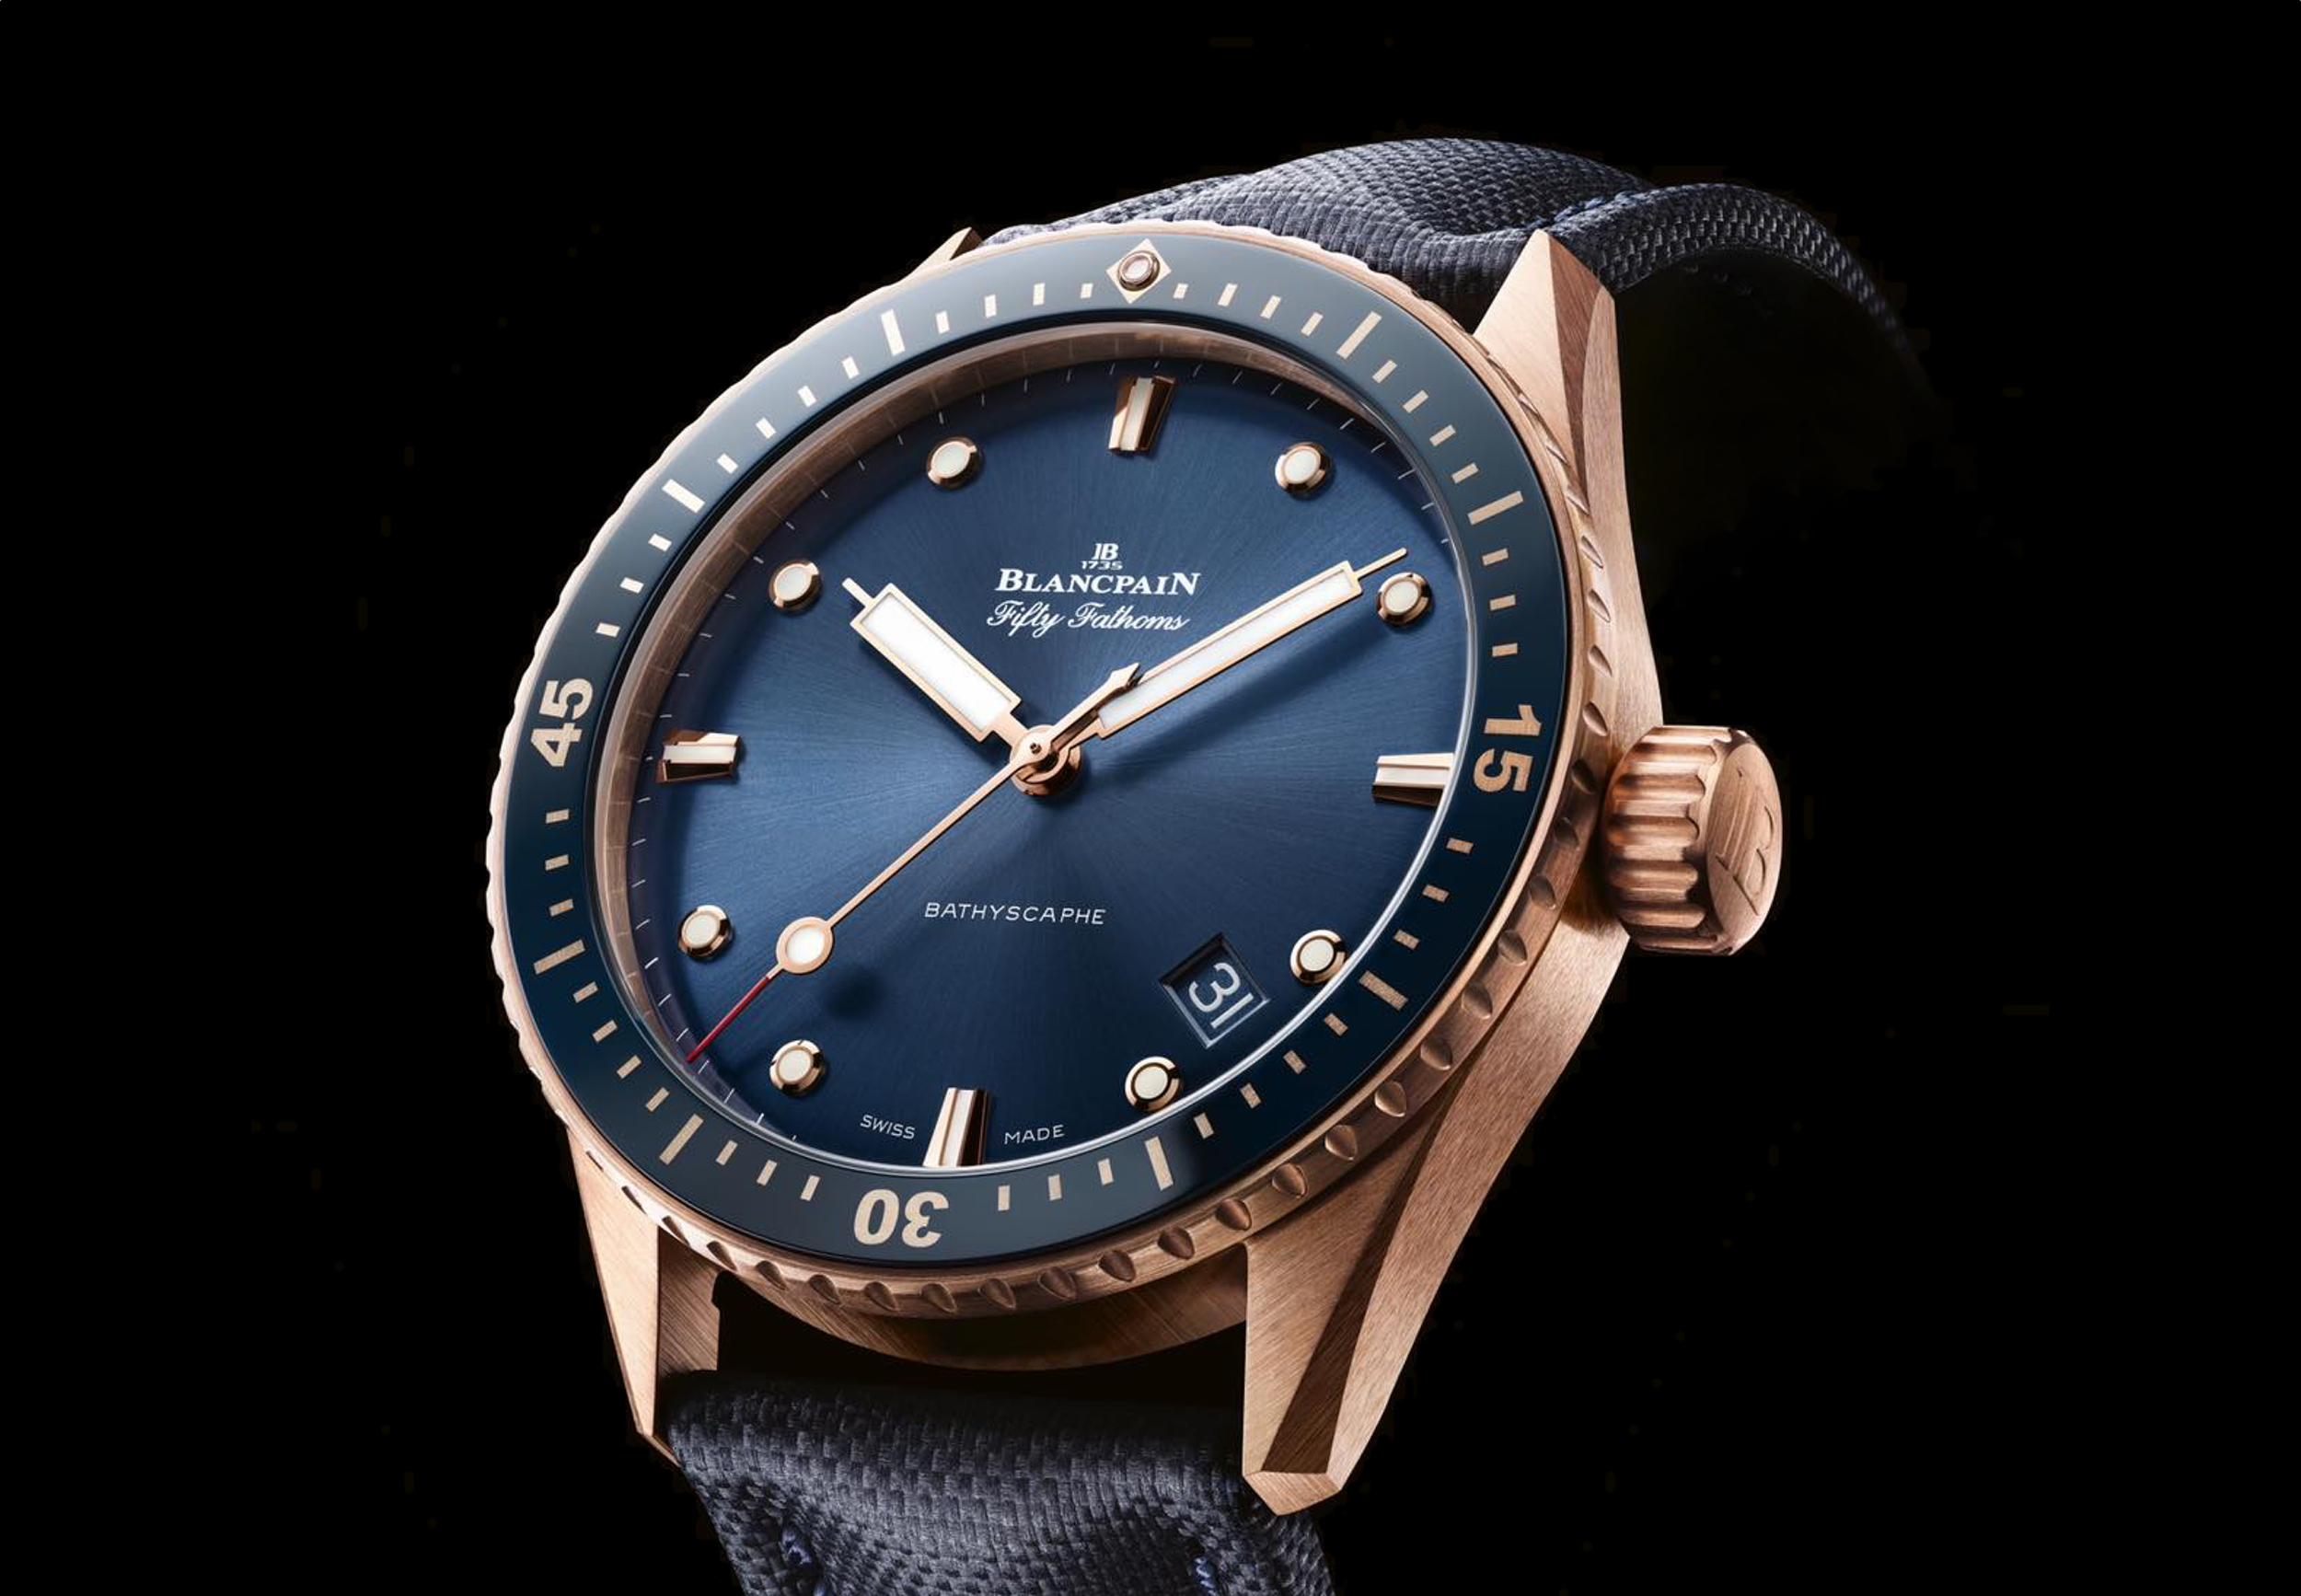 Blancpain Blue Fifty Fathoms Bathyscaphe in Sedna Gold